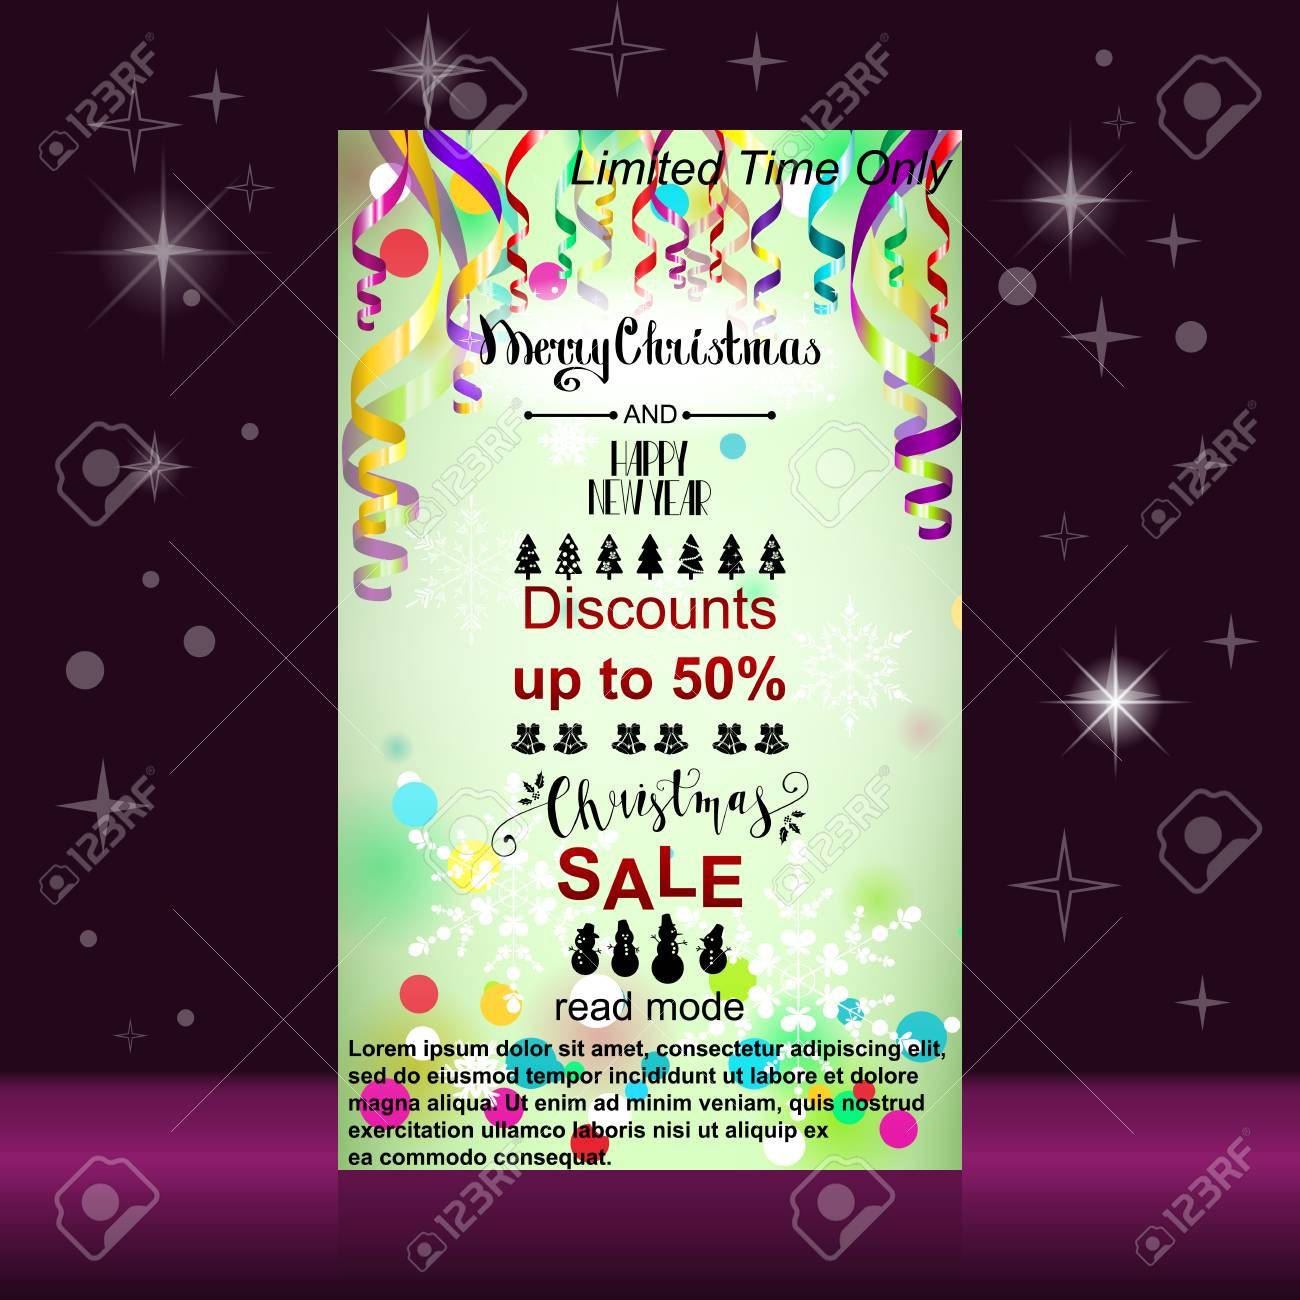 merry christmas and happy new year web banner colorful paper streamers and confetti christmas